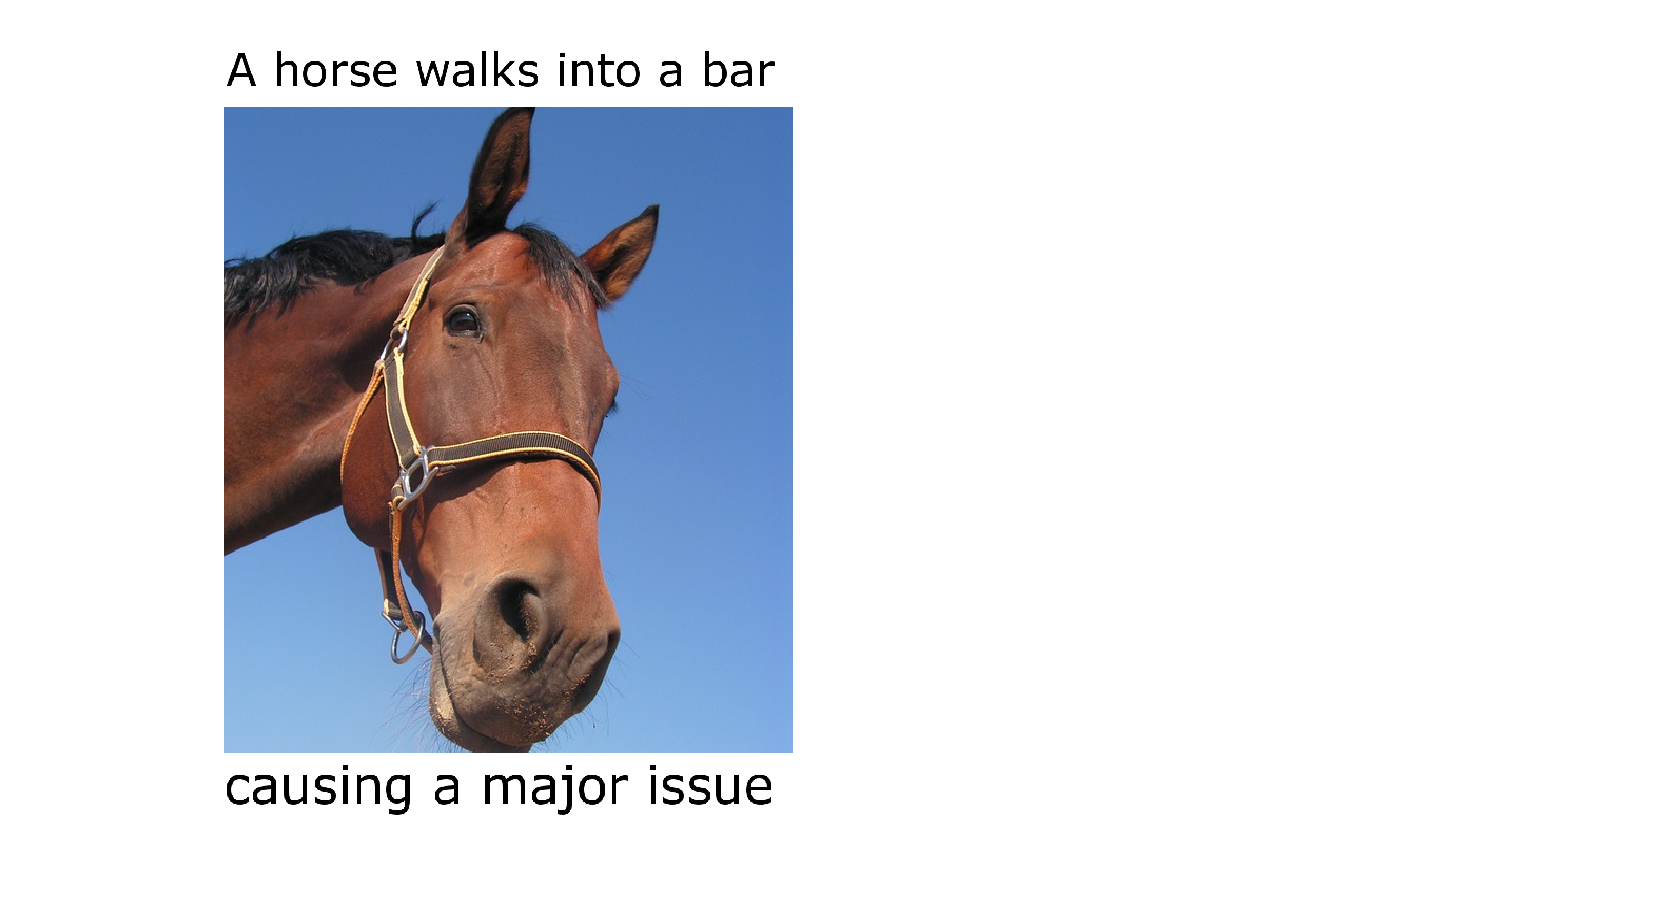 Horse walks into bar